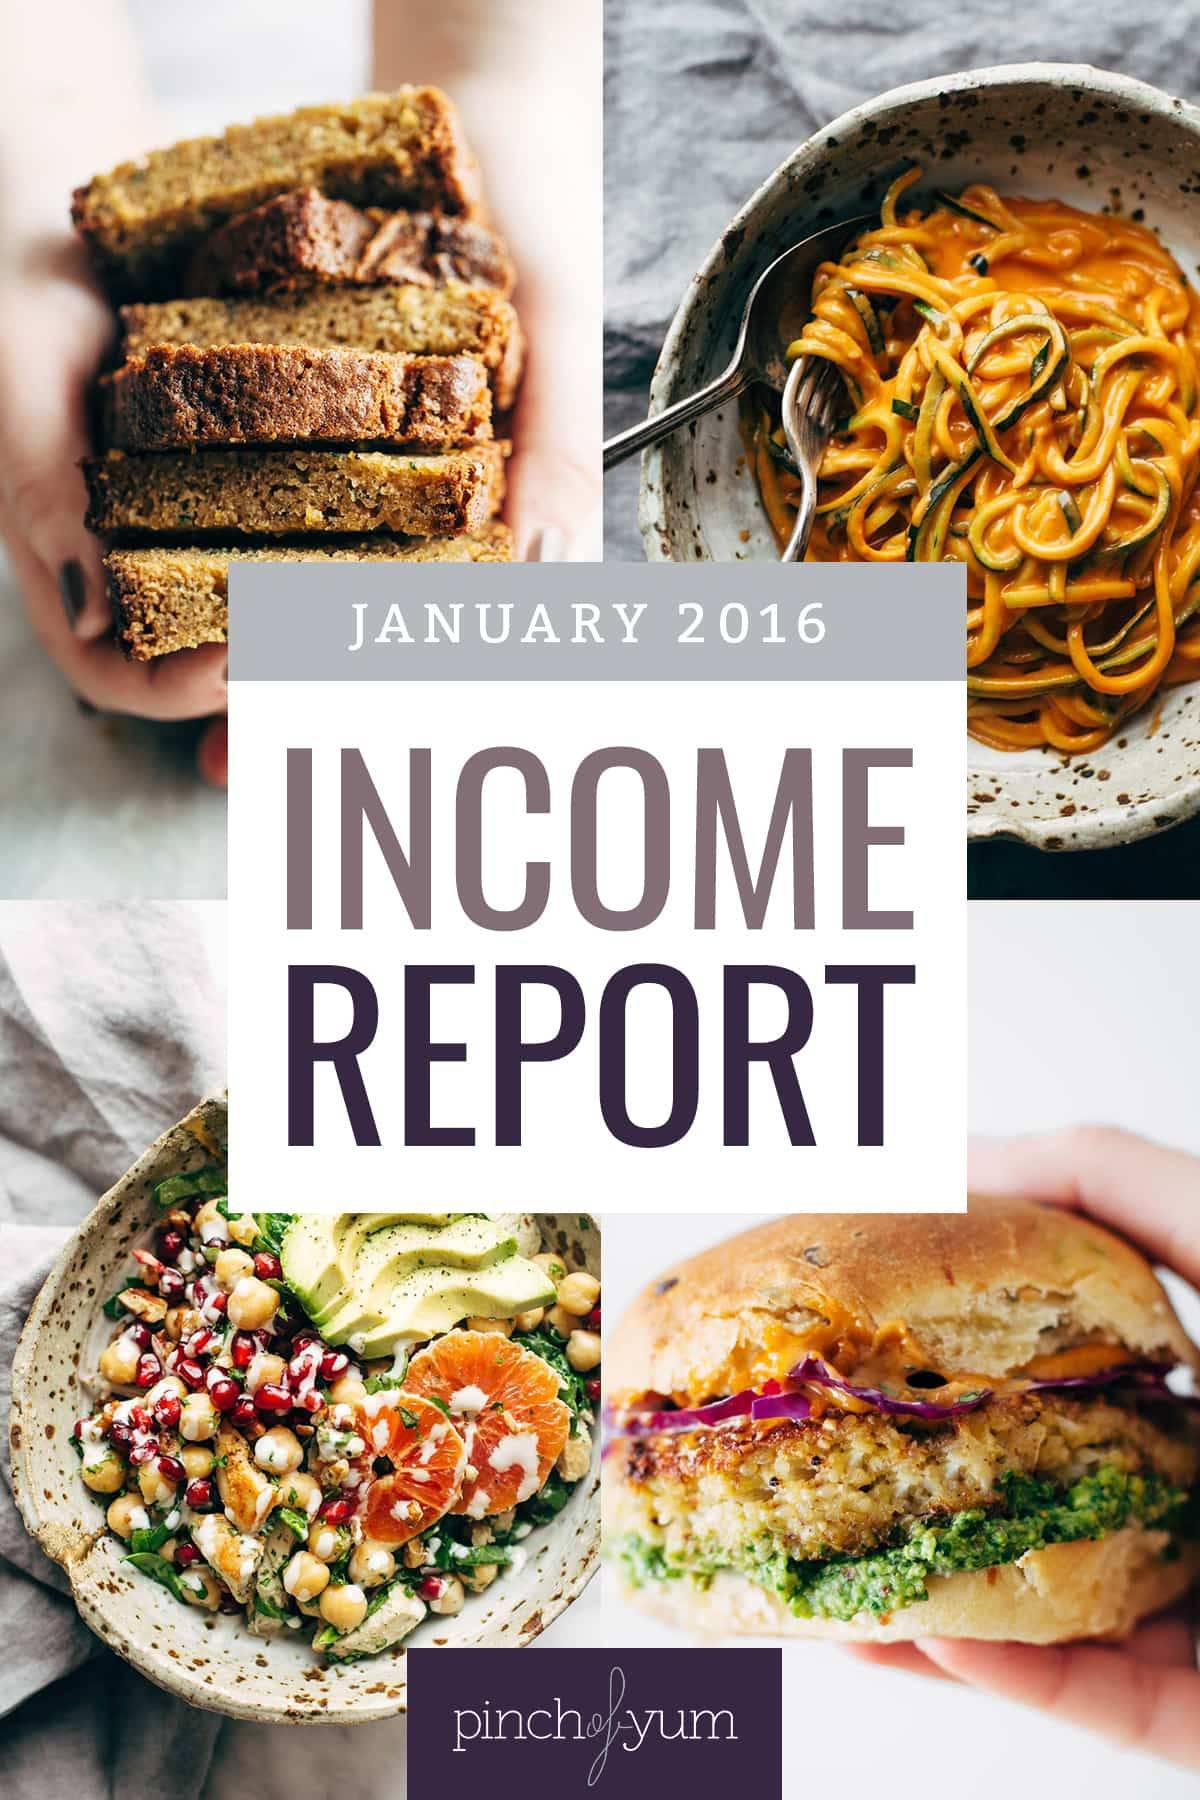 January Traffic and Income Report collage images.